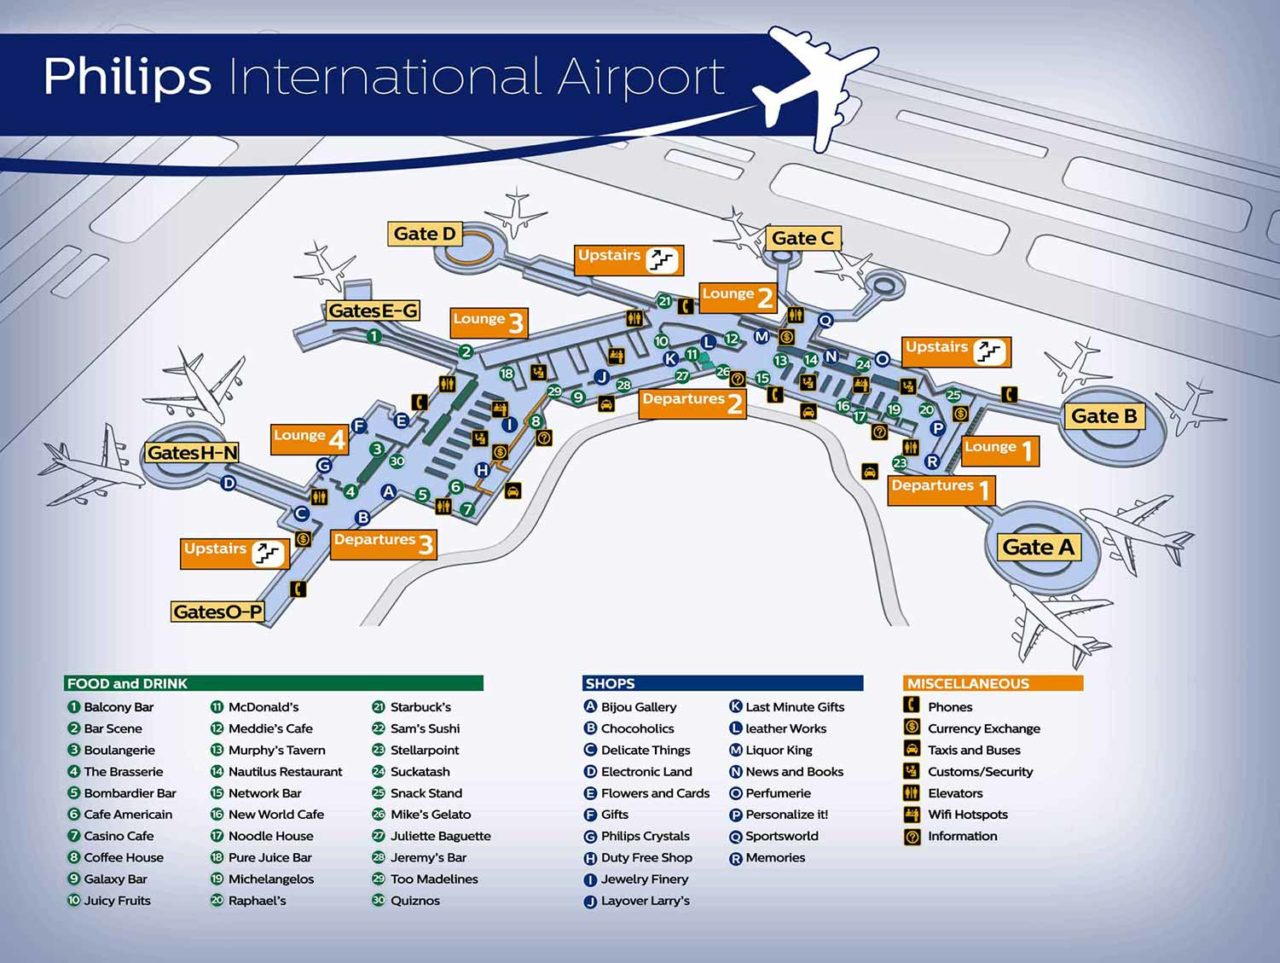 Airport floor map with a legend of shops & rooms